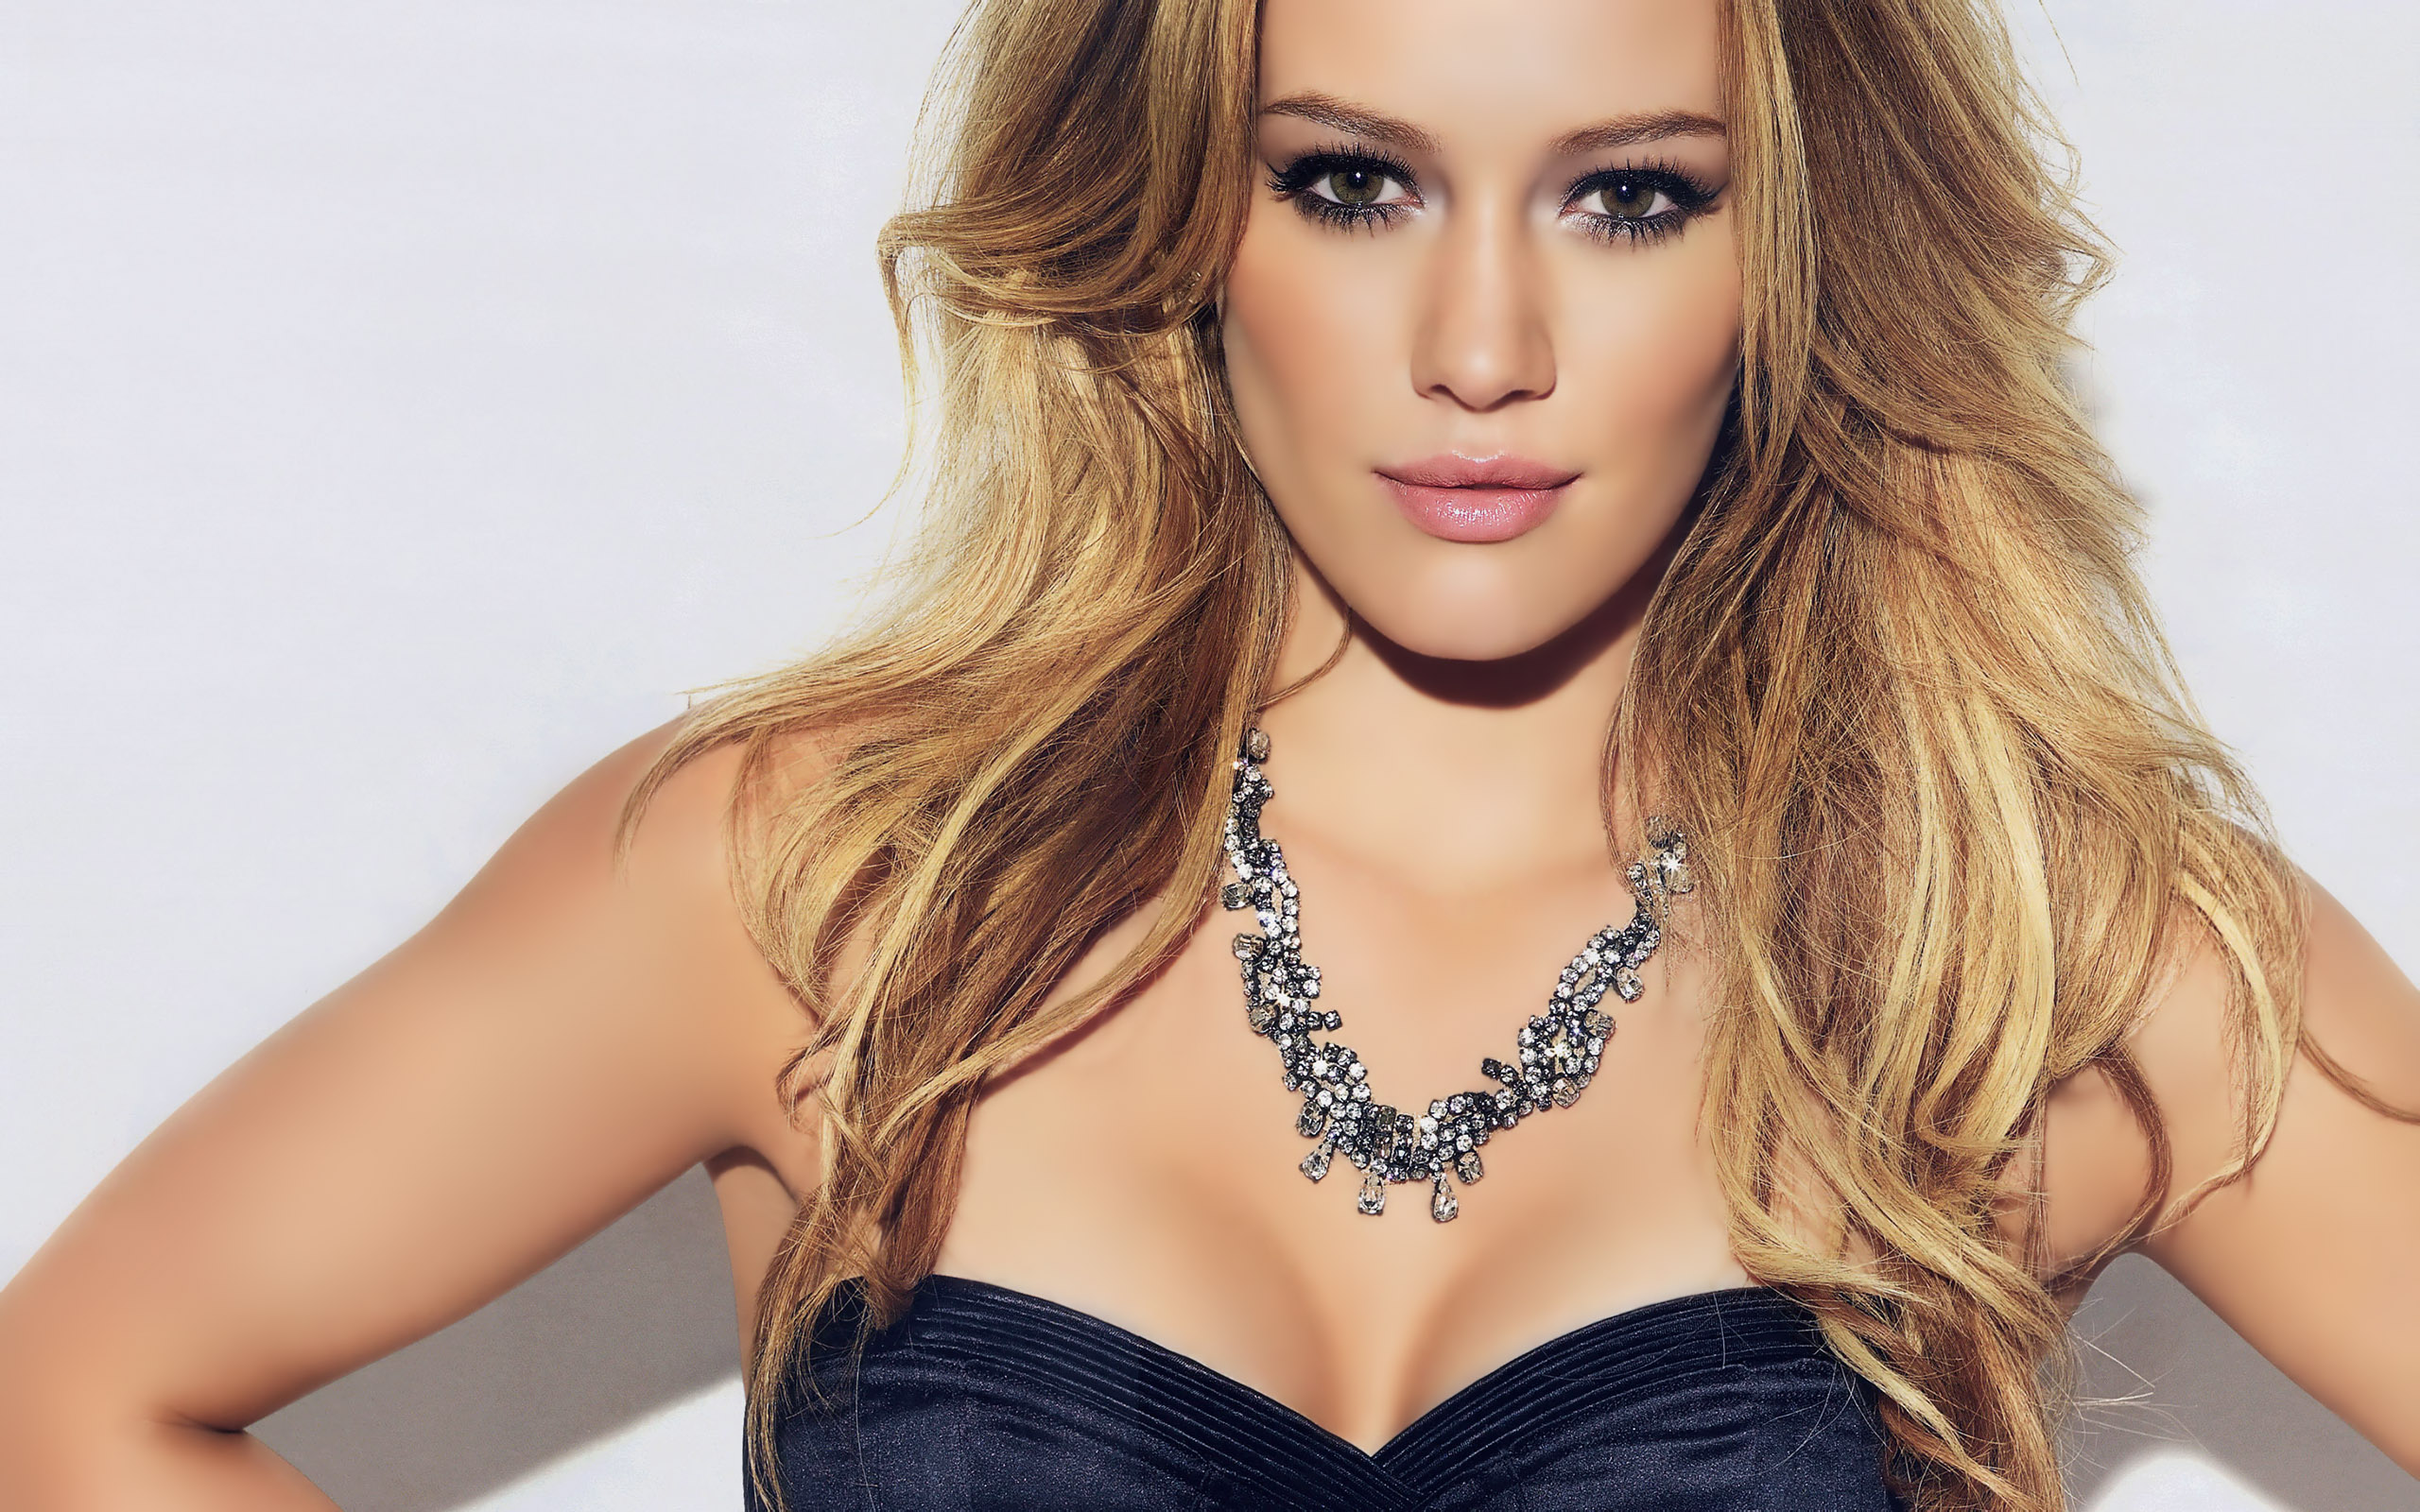 Amazing Hilary Duff Stunning Hot Pose With Cute Smile Free Mobile Hd Background Images Desktop